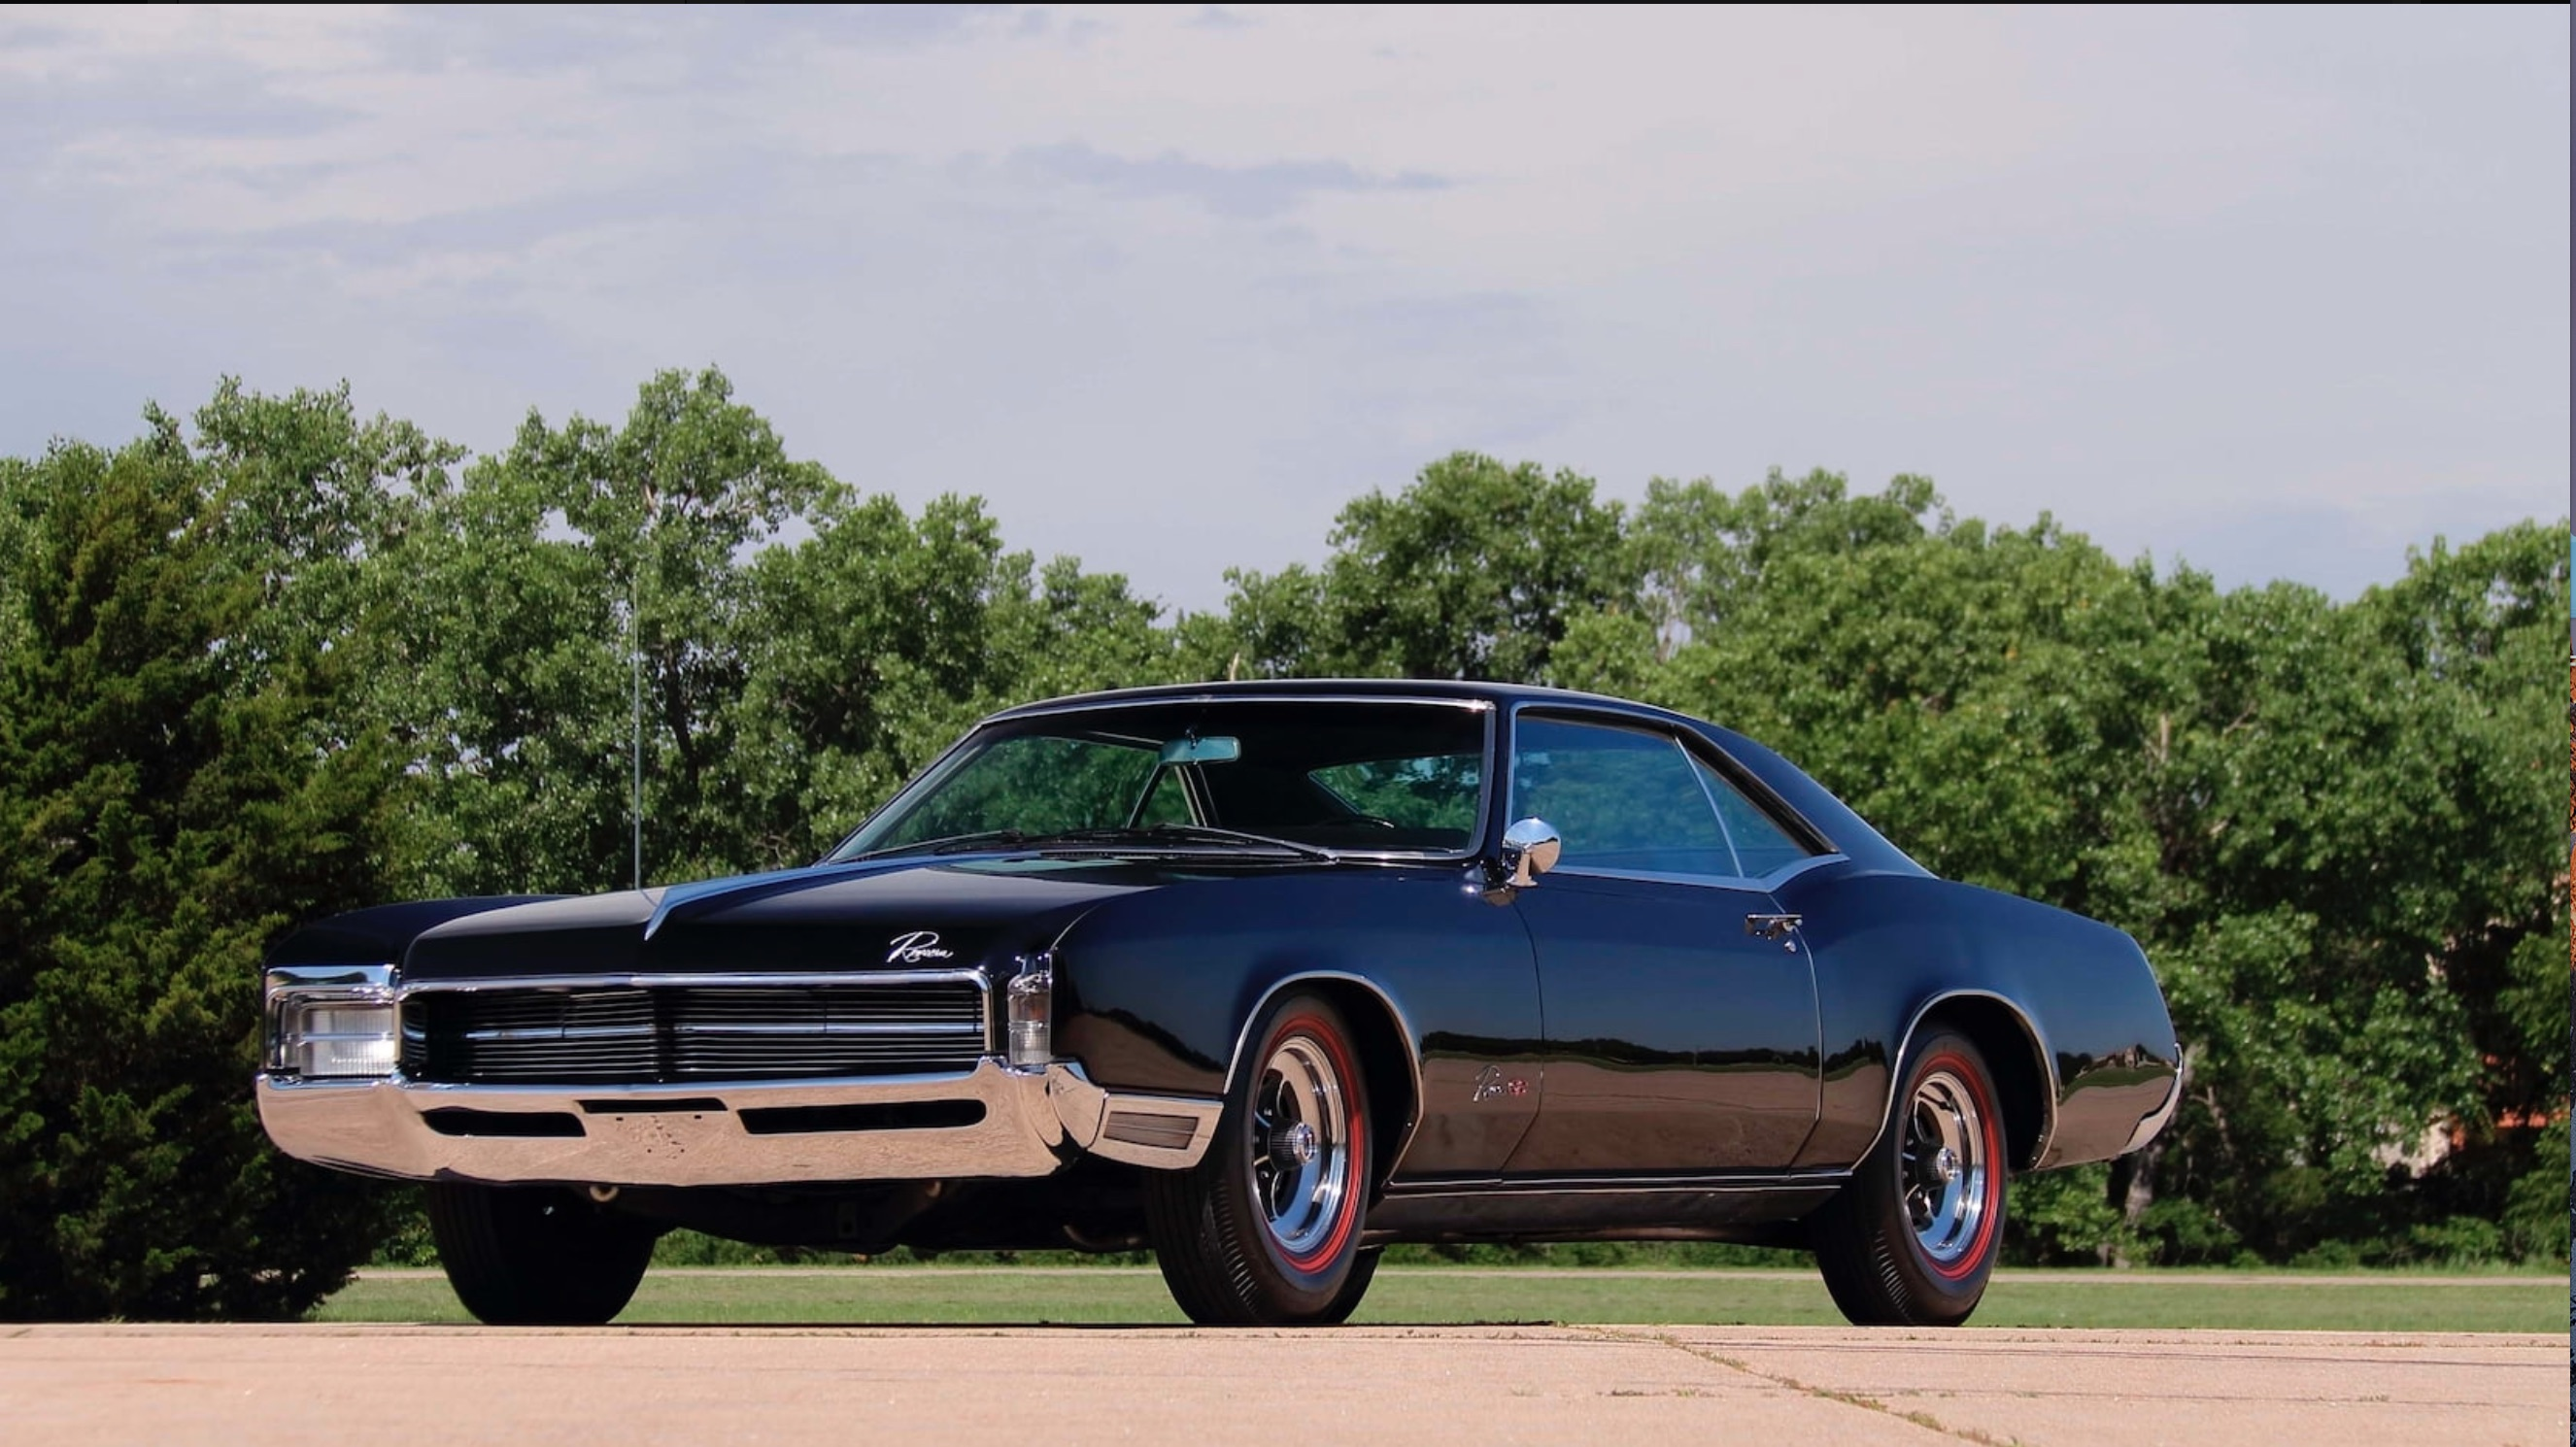 Money No Object: 1967 Buick Riviera GS – If You're Picking Just One Car, Have A Buick!